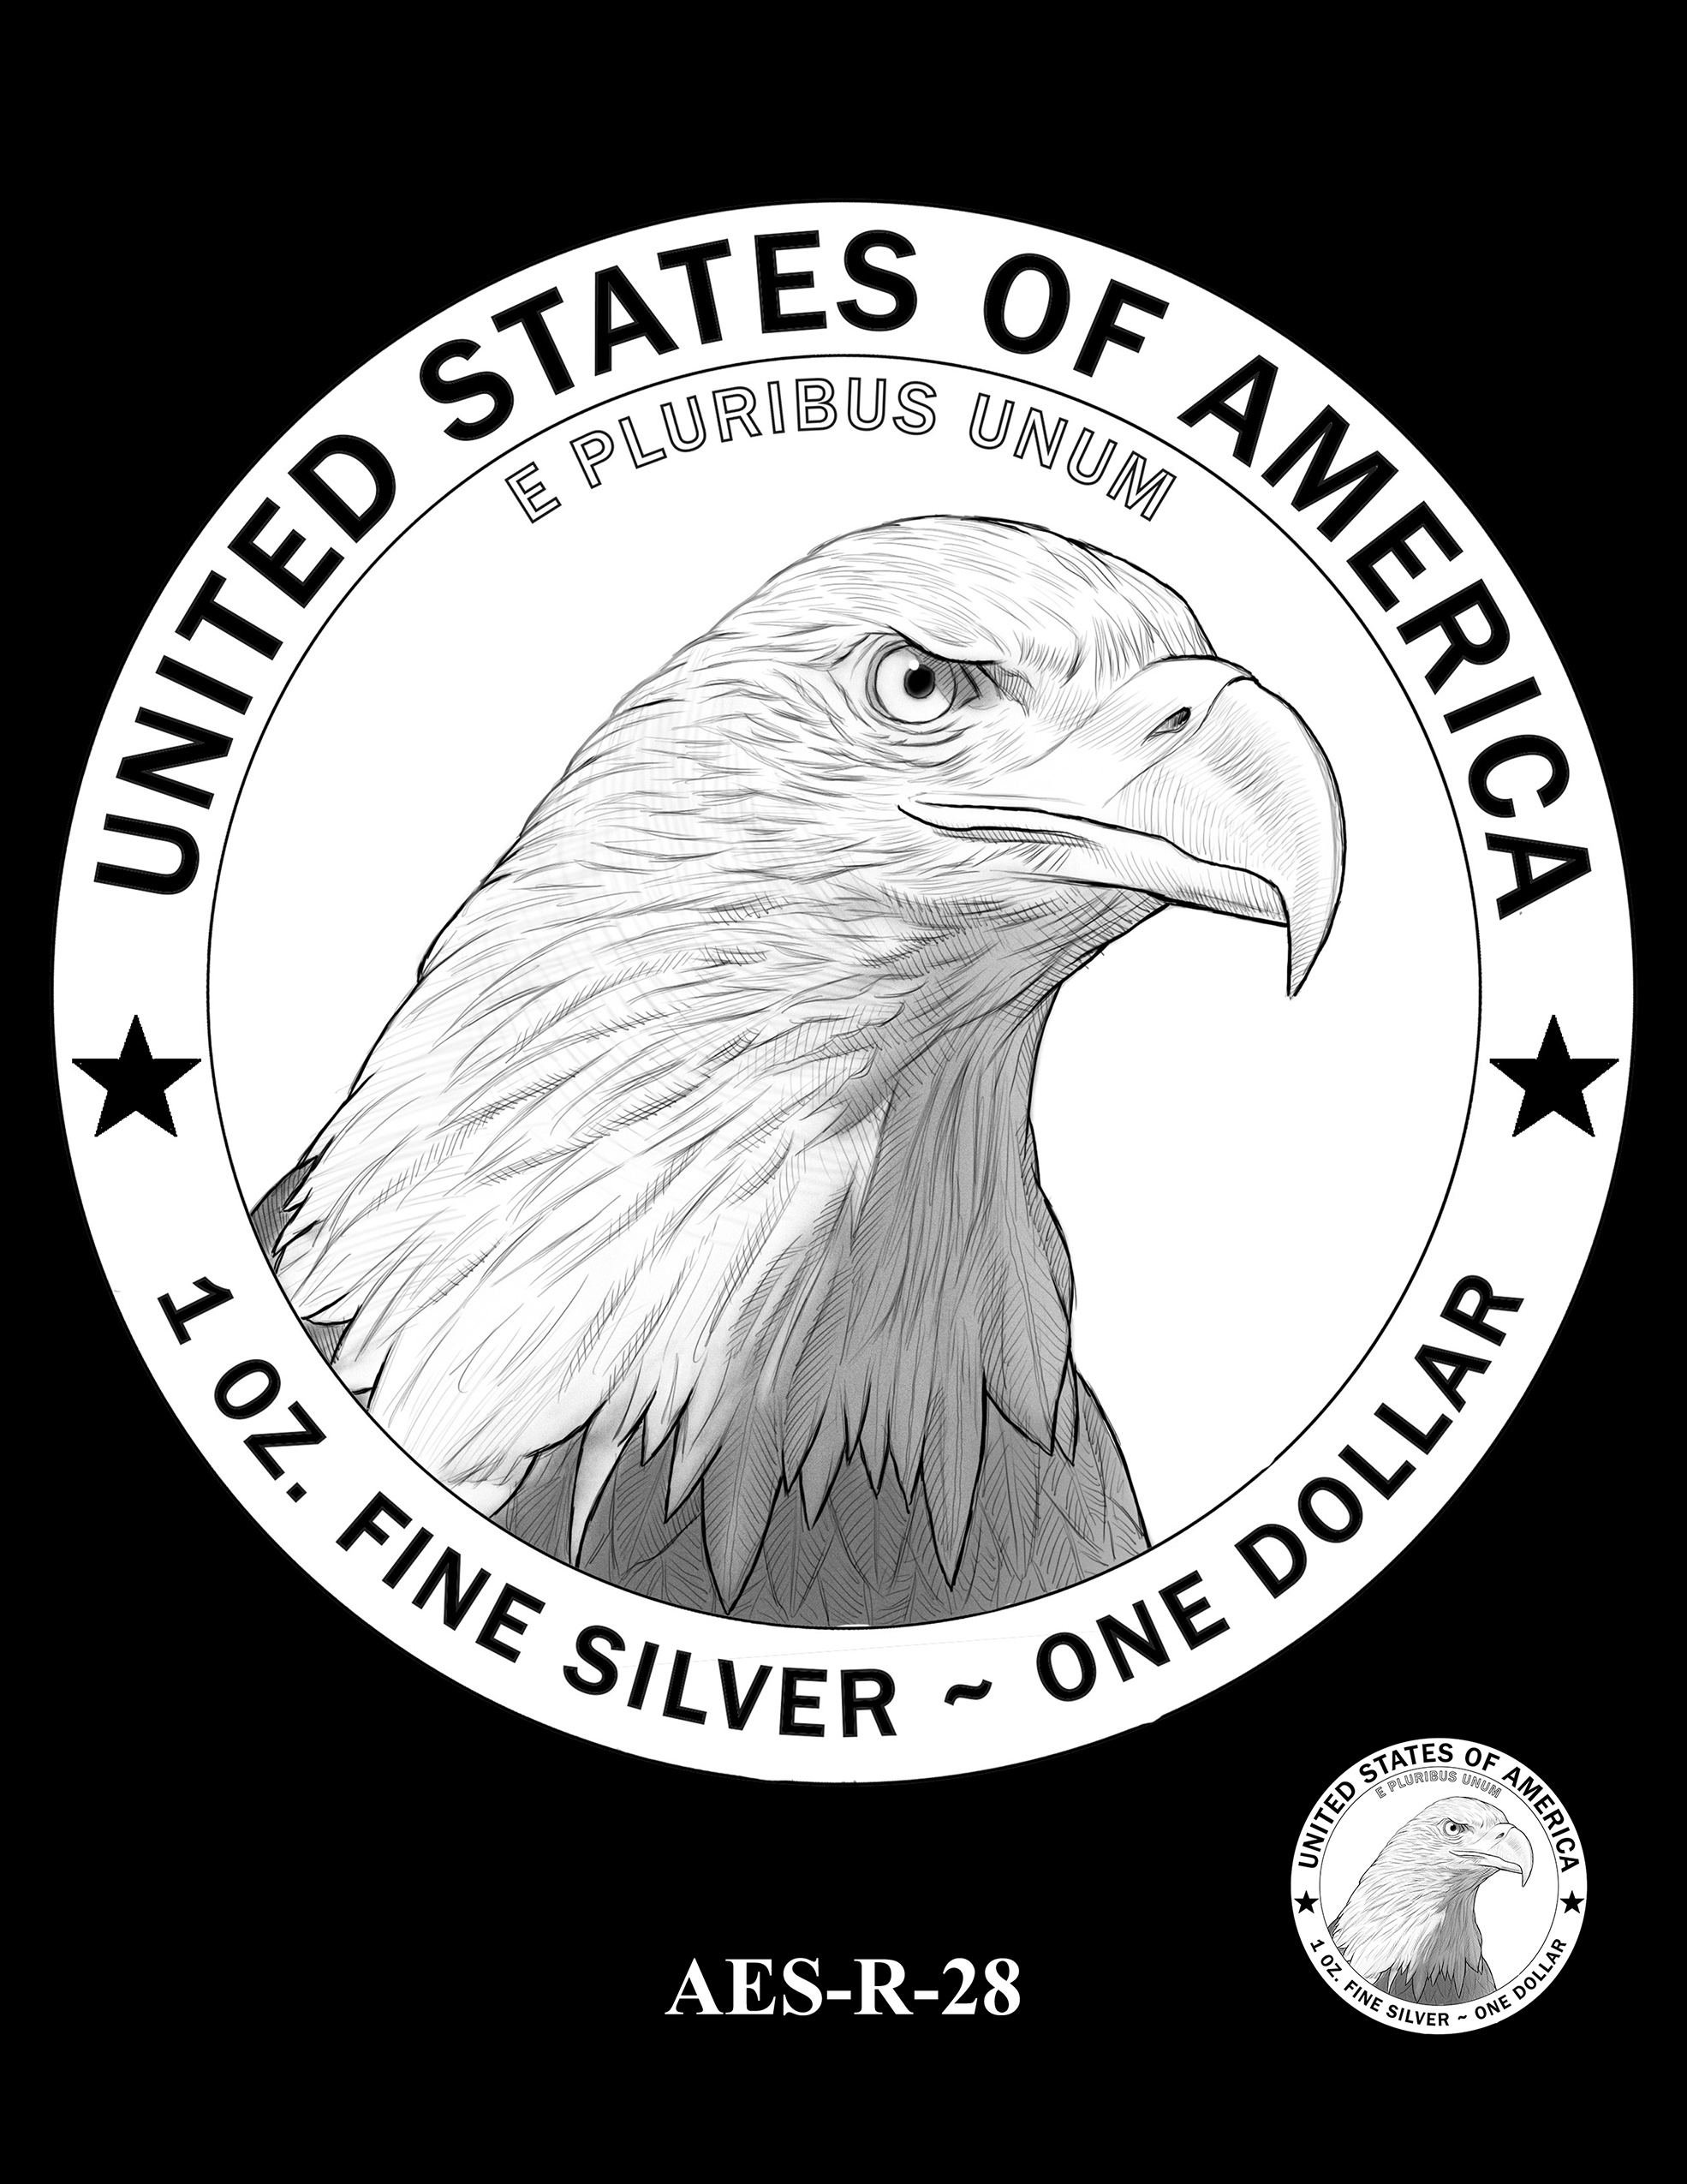 AES-R-28 -- American Eagle Proof and Bullion Silver Coin - Reverse